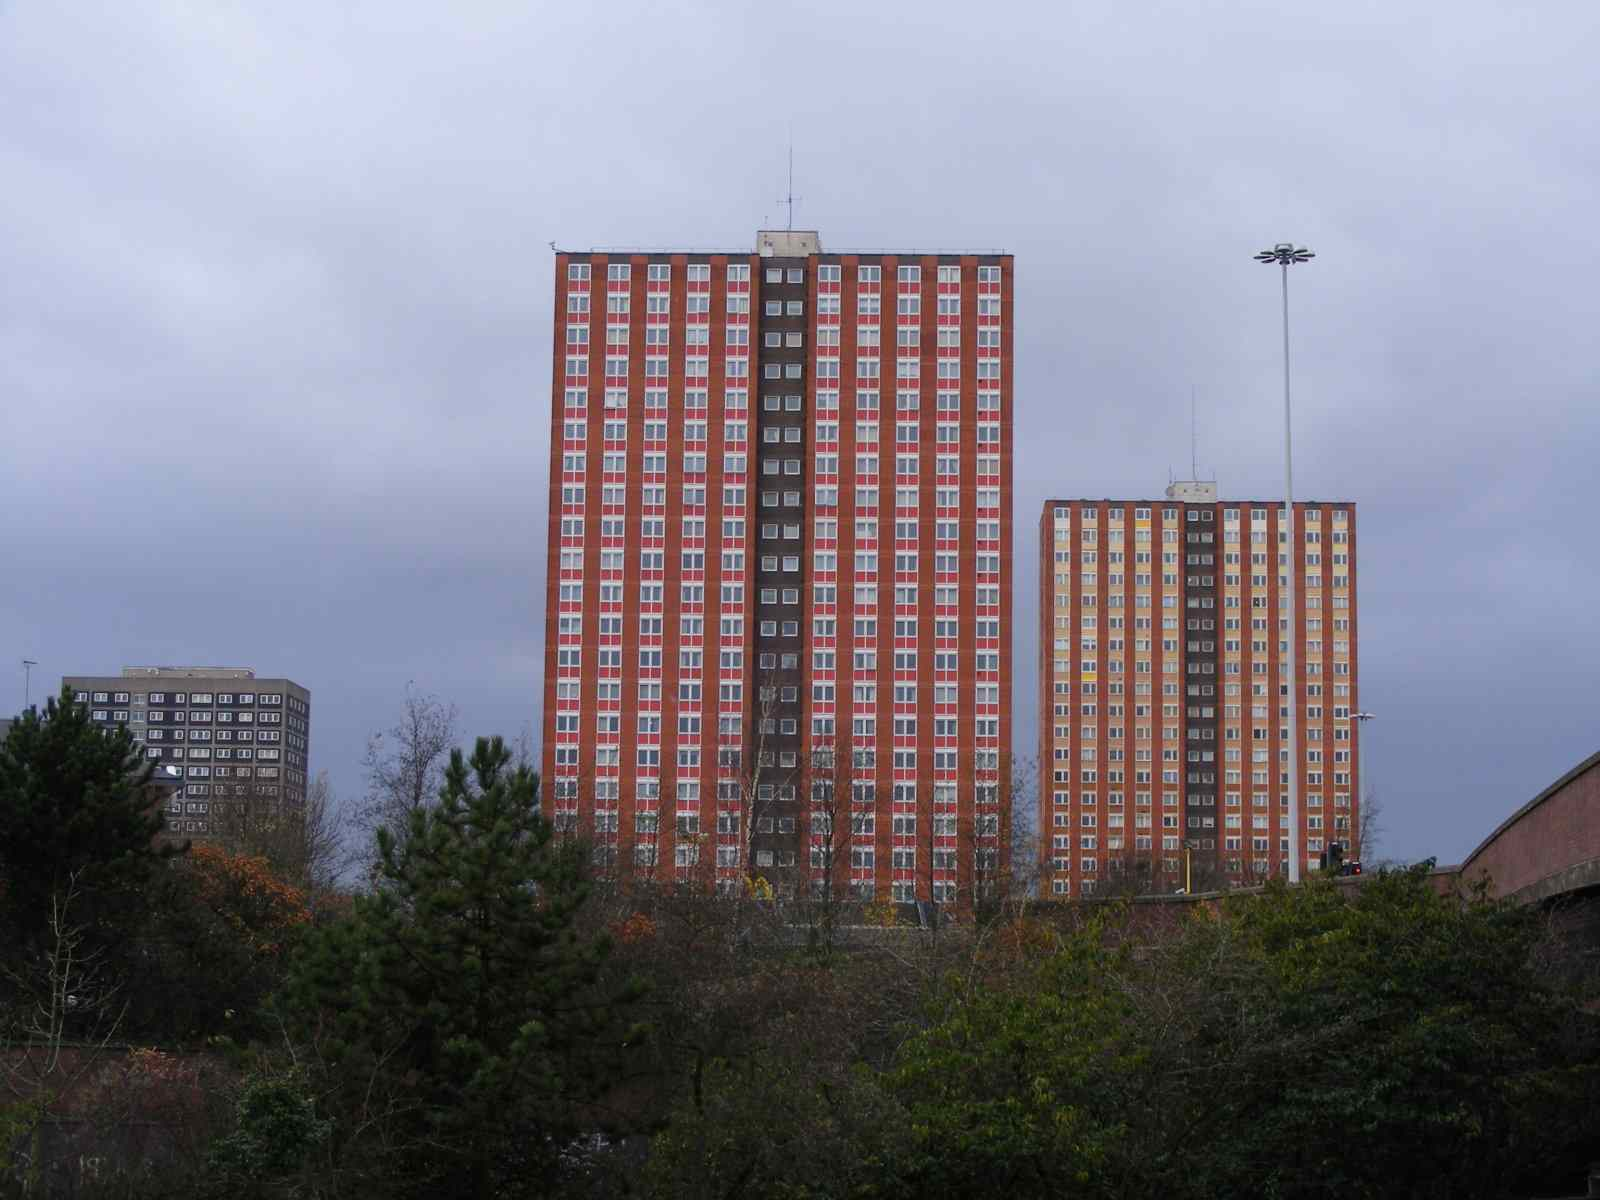 chris saggers fell off washing windows from the salford tower block.